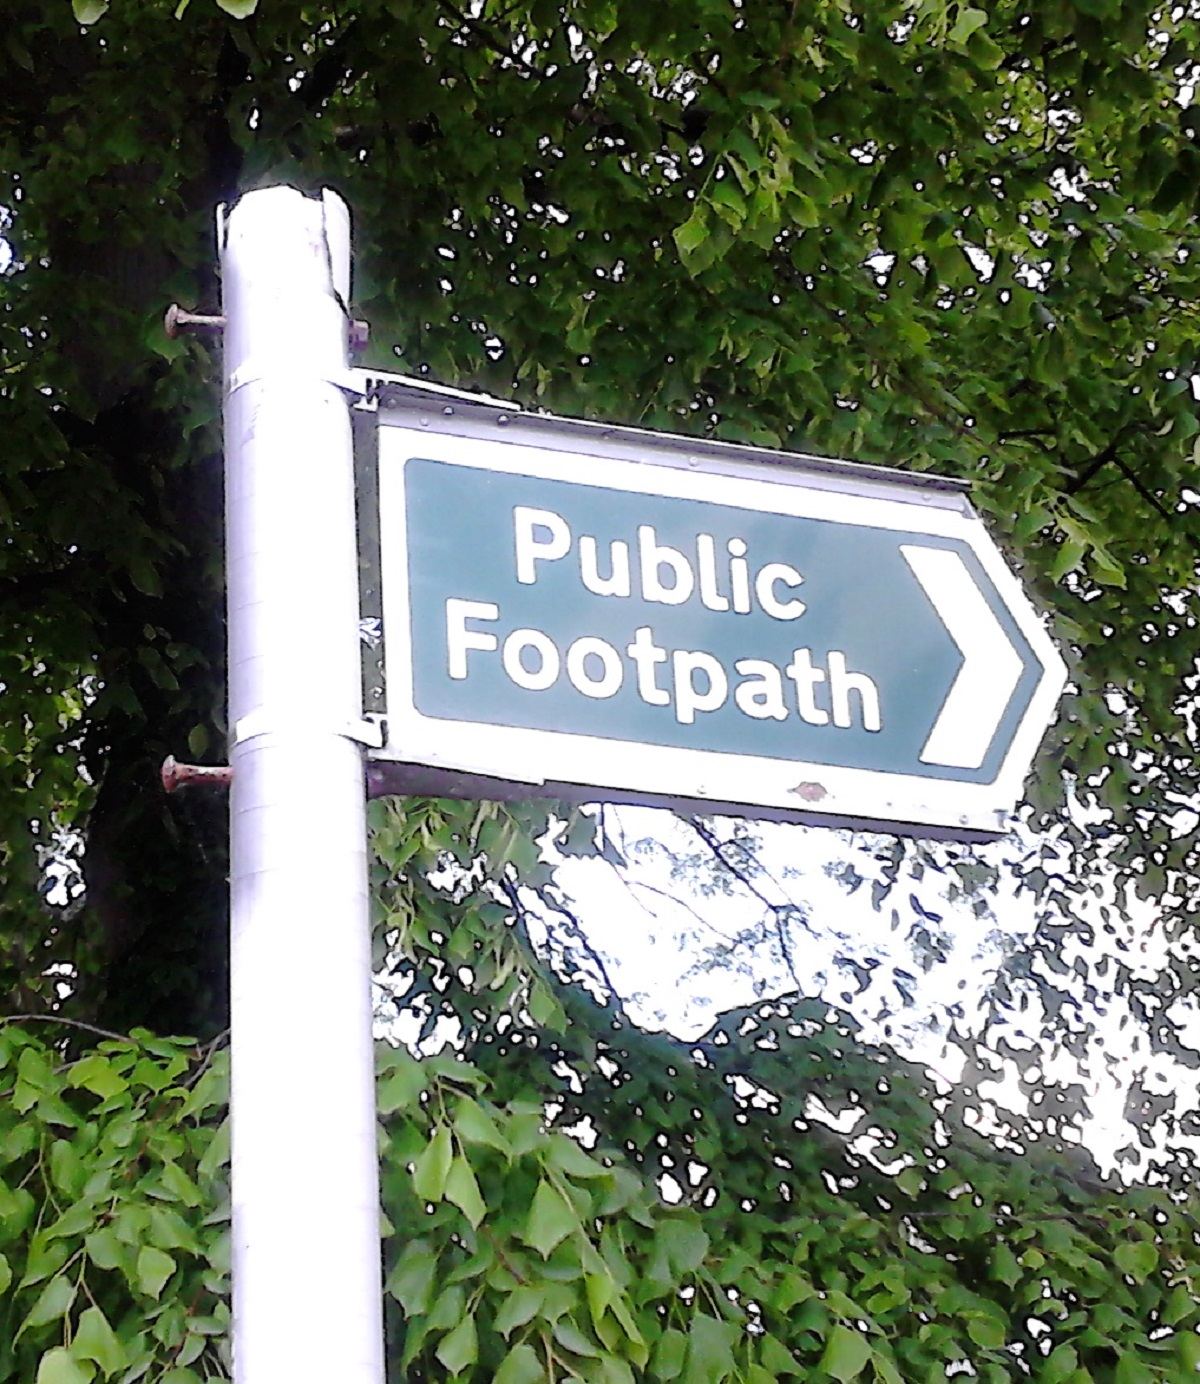 Where are the path signs?